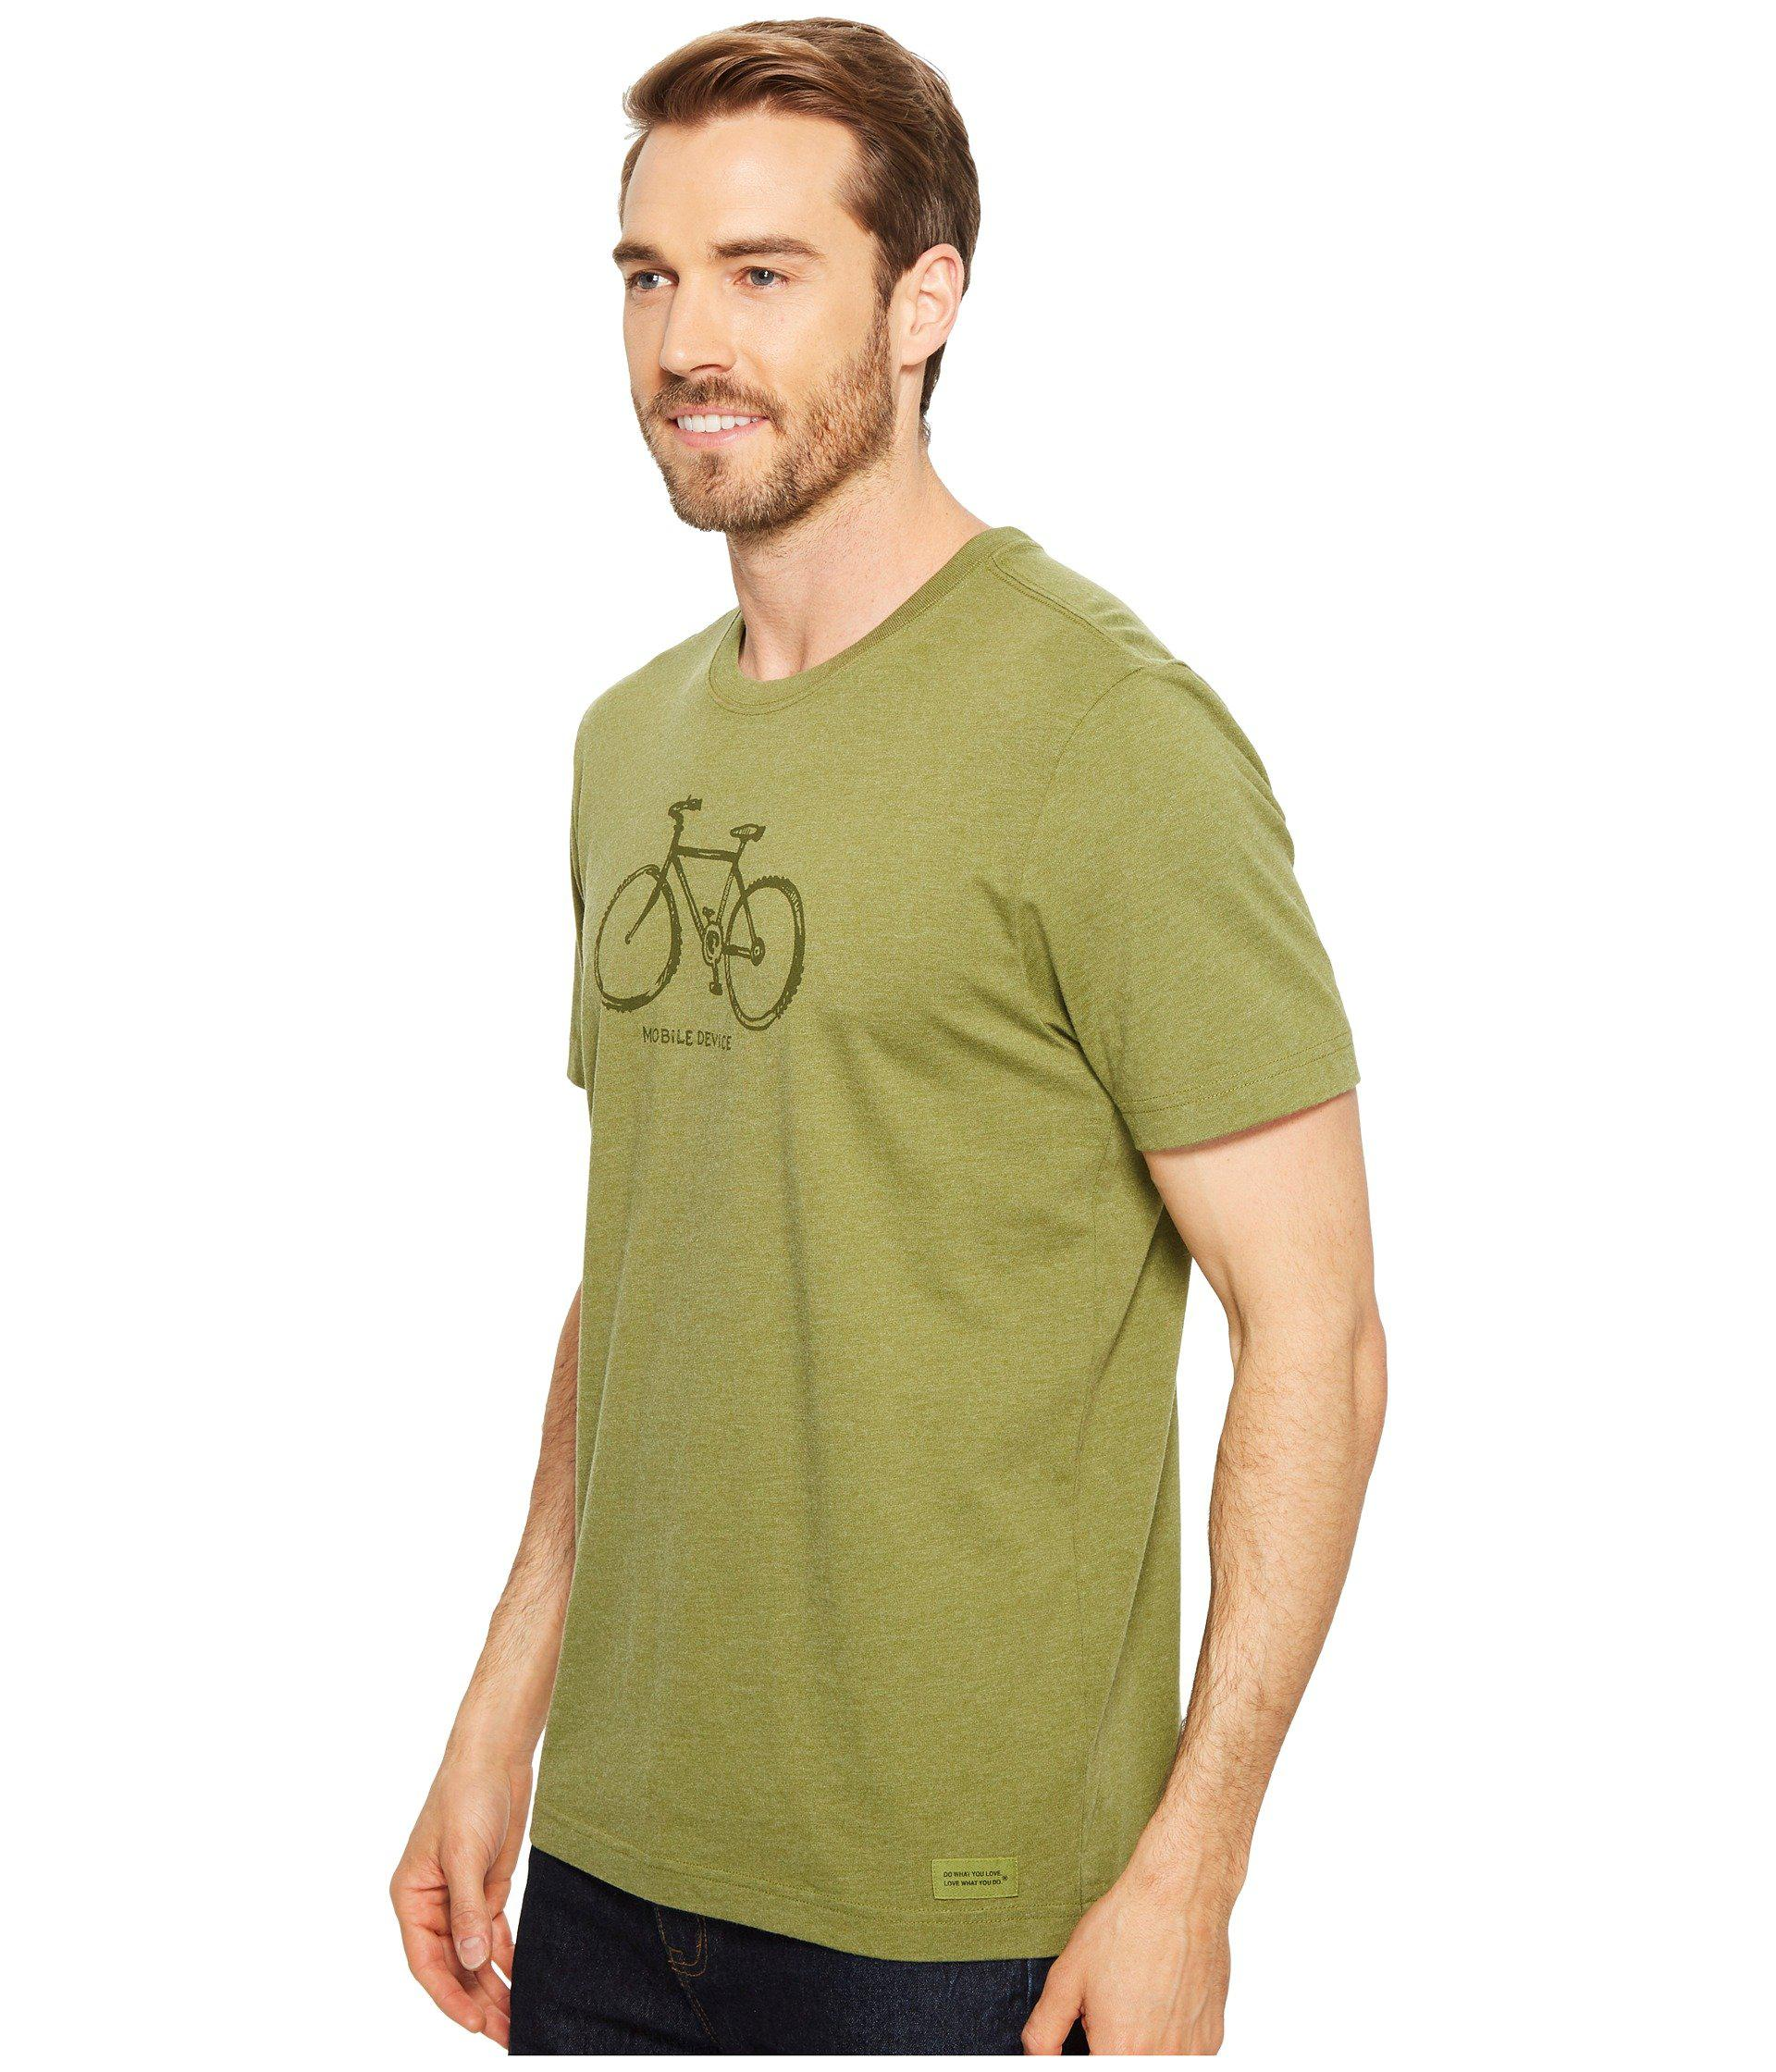 Life Is Good  Mobile Device Bike Crusher Tee (heather Tree Green) T Shirt  for men